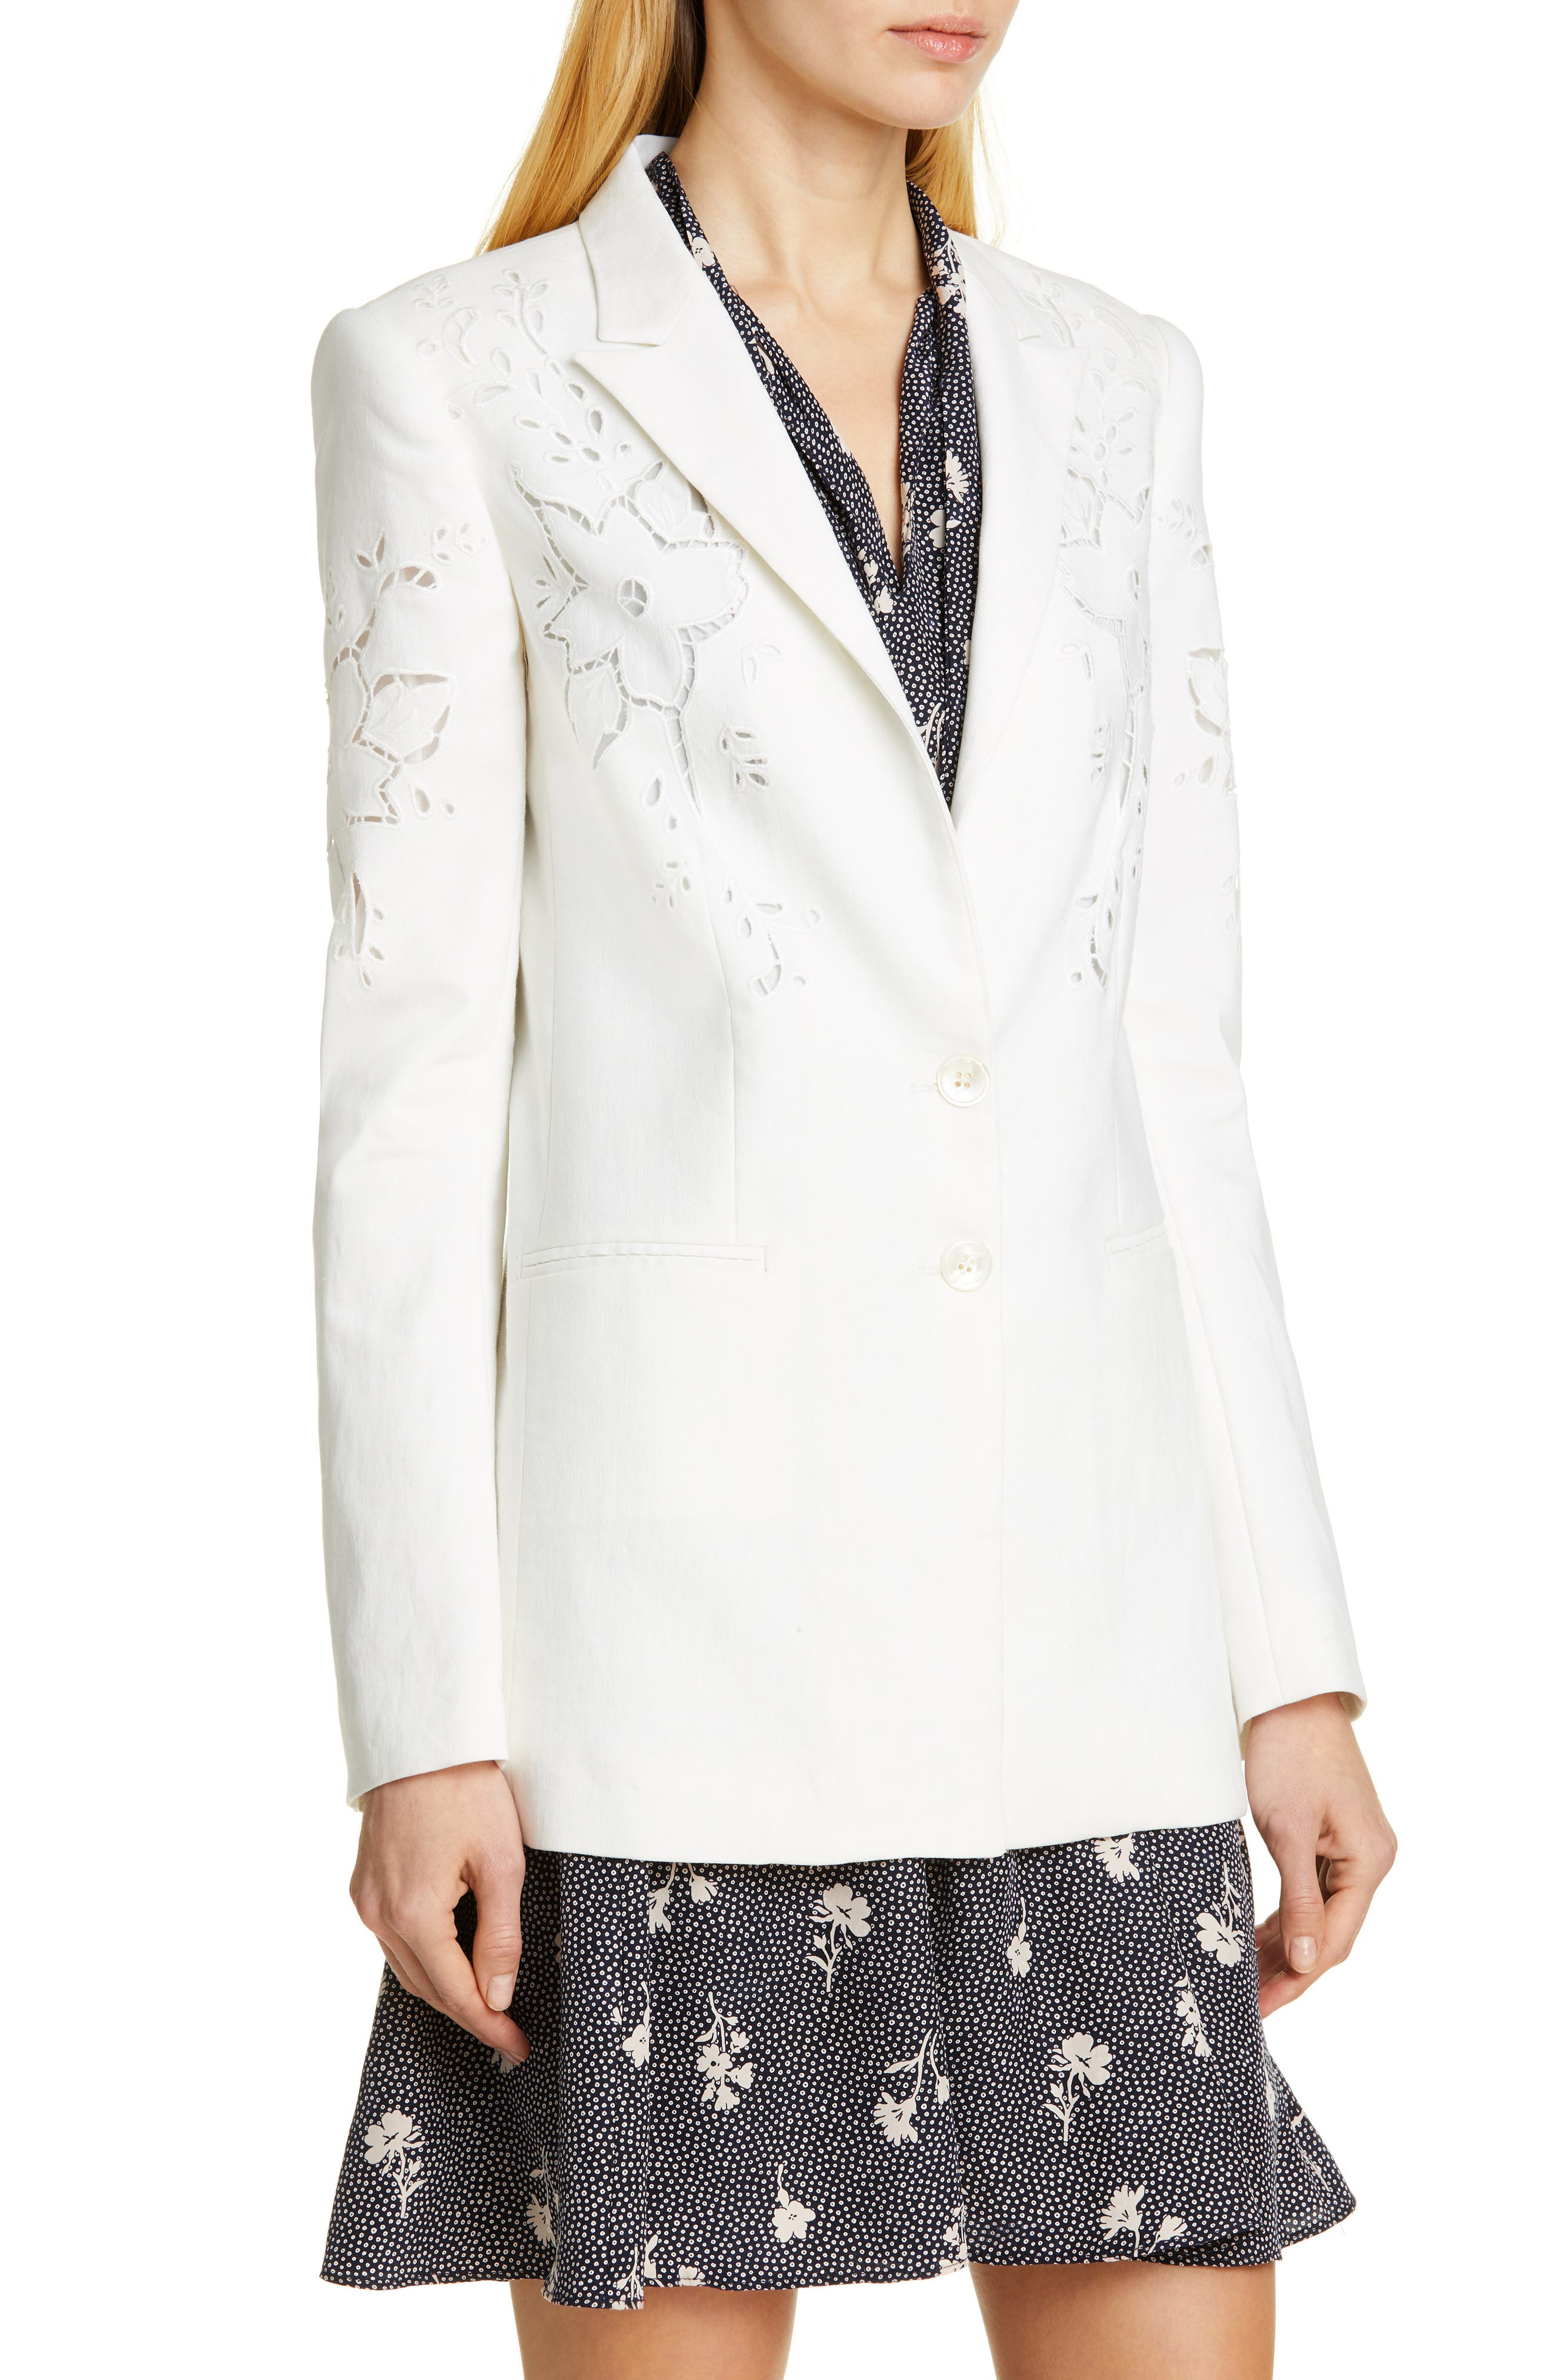 TAILORED BY REBECCA TAYLOR,                             Eyelet Embroidery Linen Blend Blazer,                             Alternate thumbnail 4, color,                             SNOW